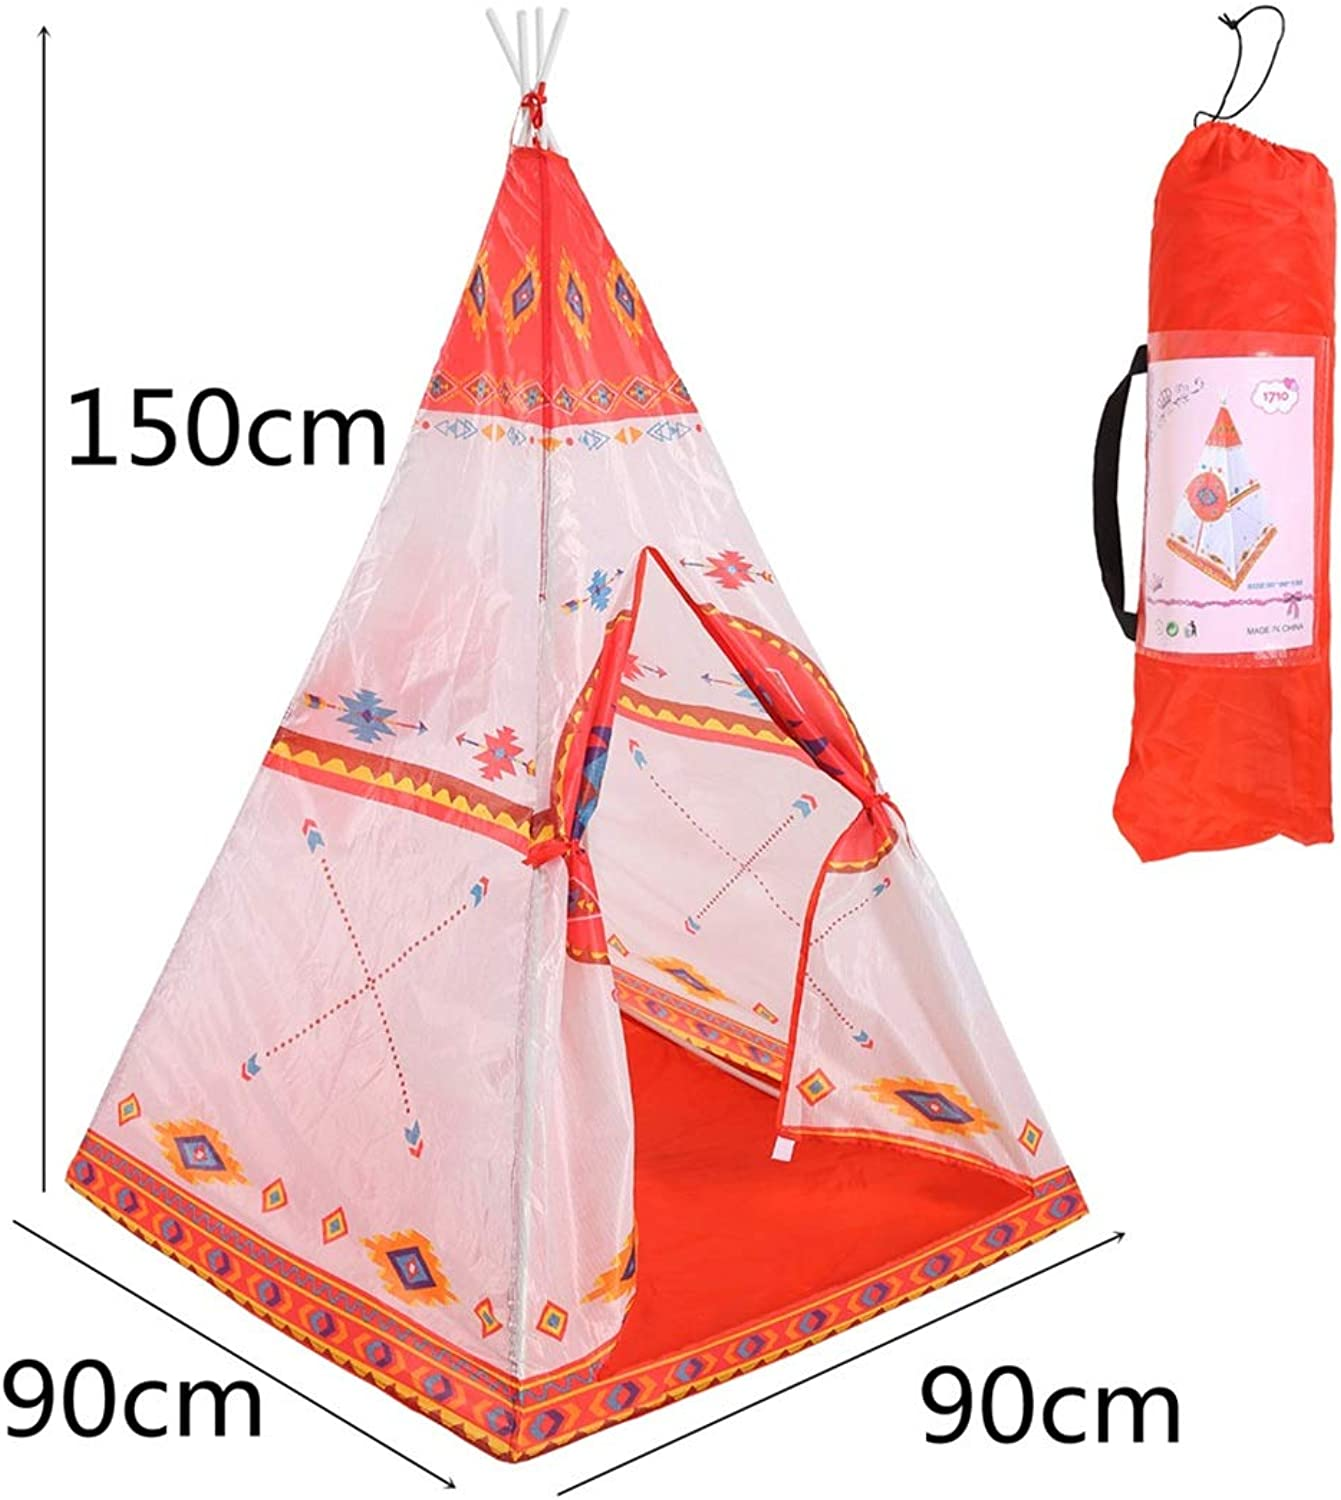 FUBULECY Kinderzelt Indoor Outdoor Faltbare Kinderspielhaus Mini Tipi (Farbe   Orange)